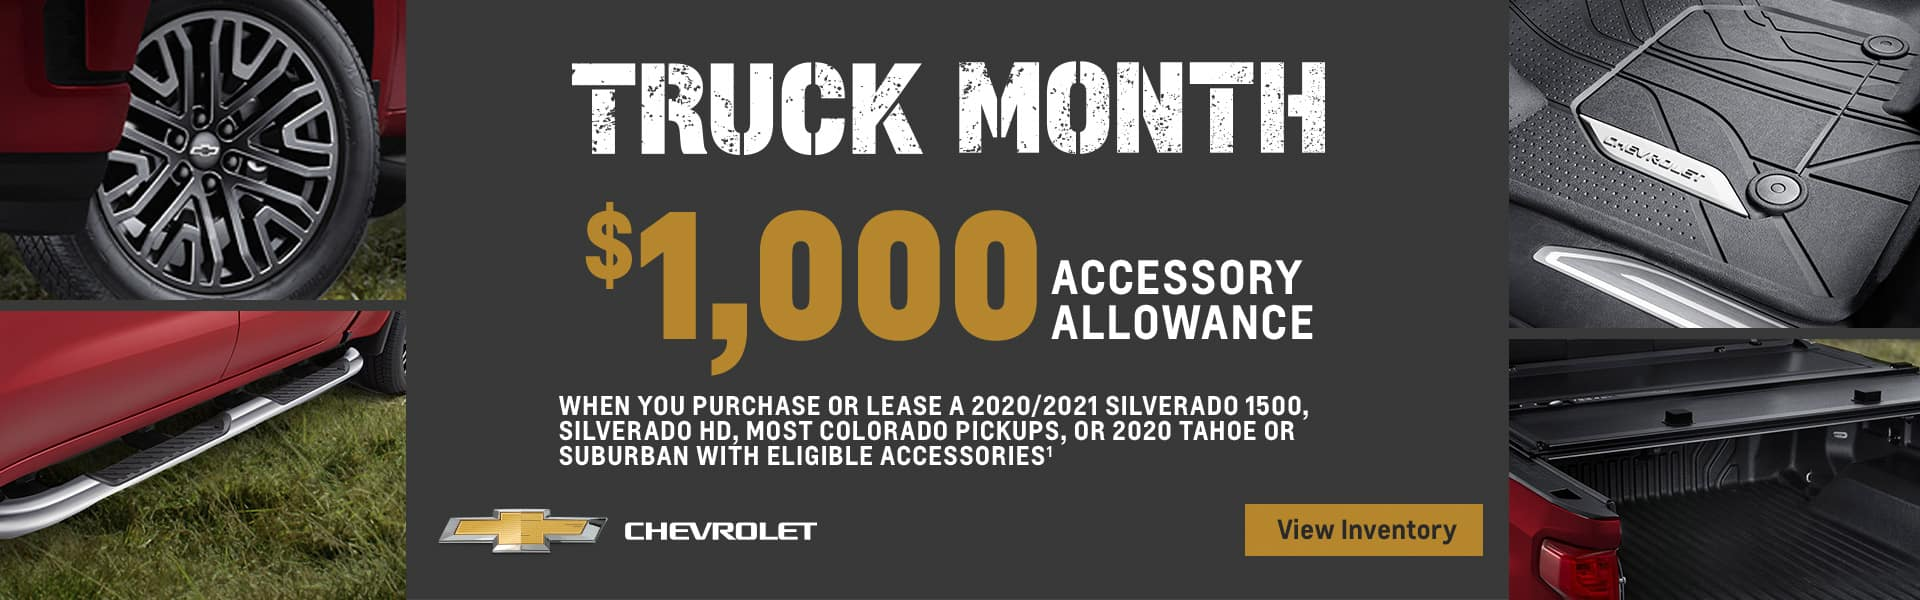 14_2020_OCTOBER_TRUCK MONTH ACCESSORIES_NATIONAL_1900x600